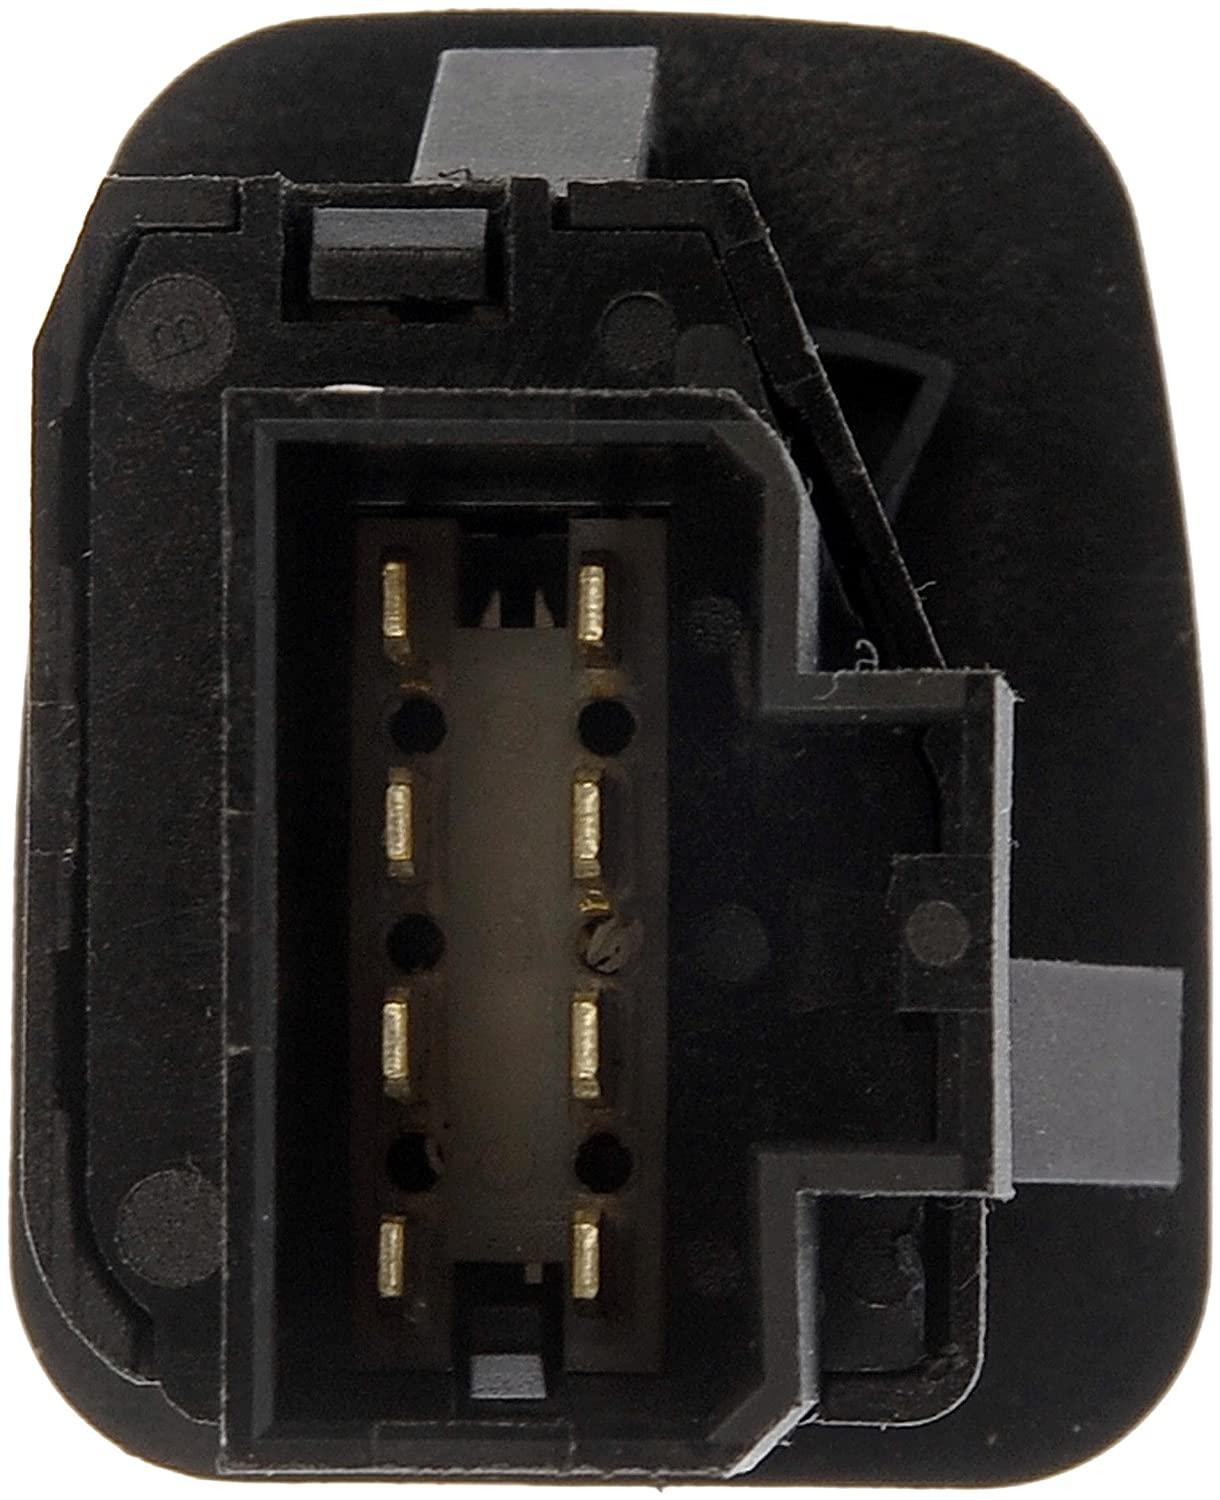 Dorman 901 319 Front Left Mirror Switch For Select Ford 99 Gmc Truck Wiring Diagramthe Power Windows Door Locks Models Automotive